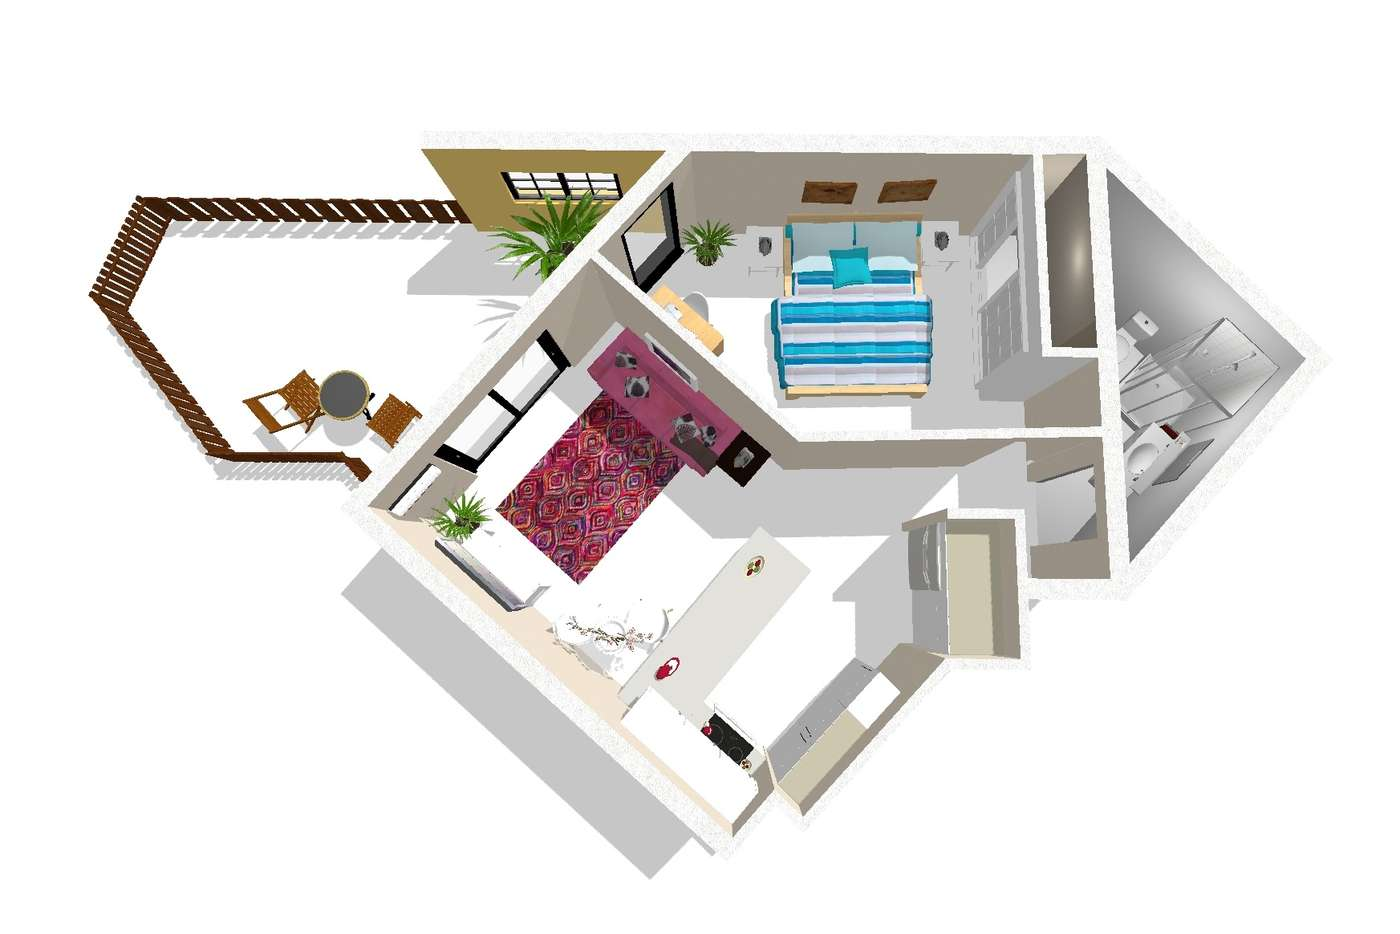 Main view of Homely apartment listing, 6/10-12 Bath Street, Labrador QLD 4215